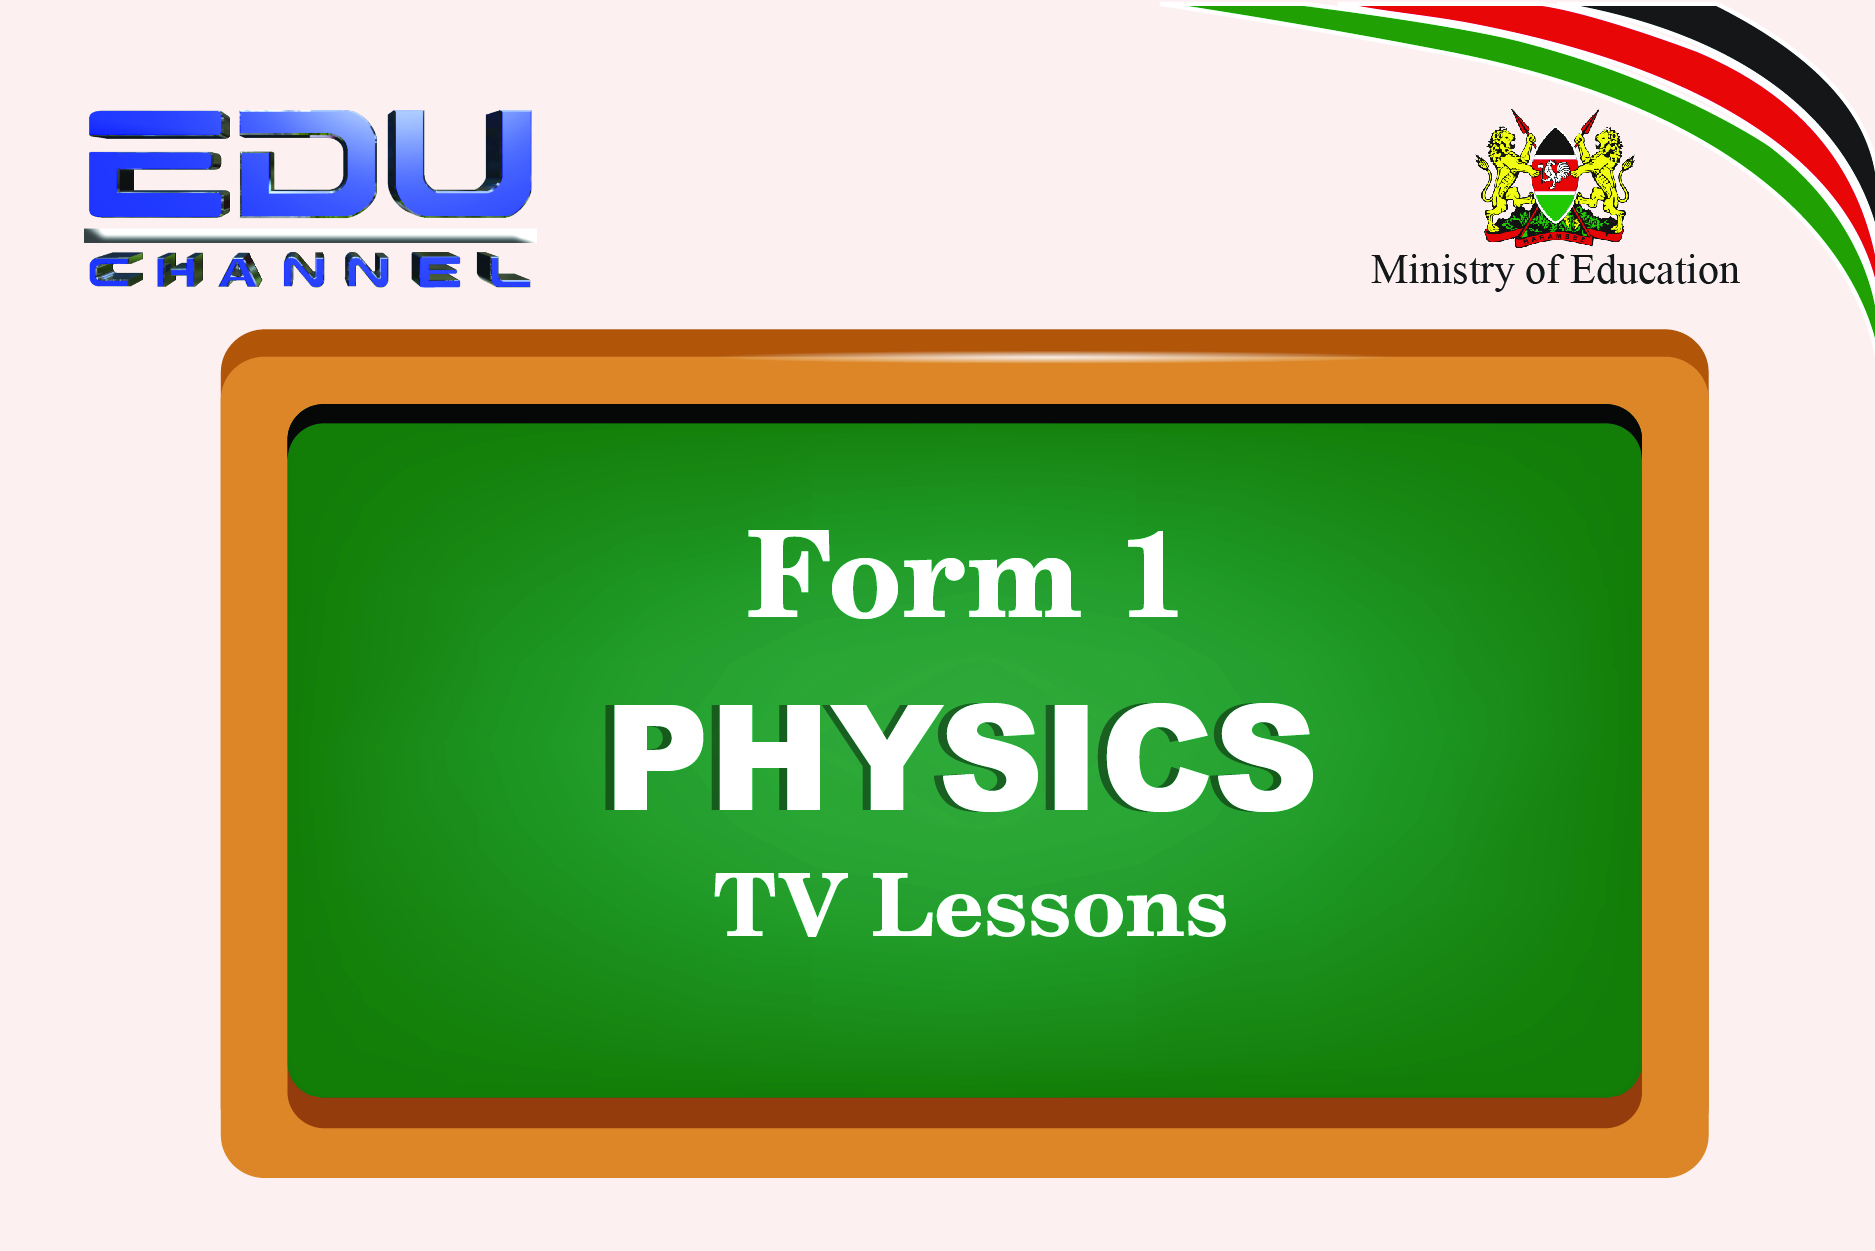 Form 1 Physics Lesson 2: SI Units of Measurement